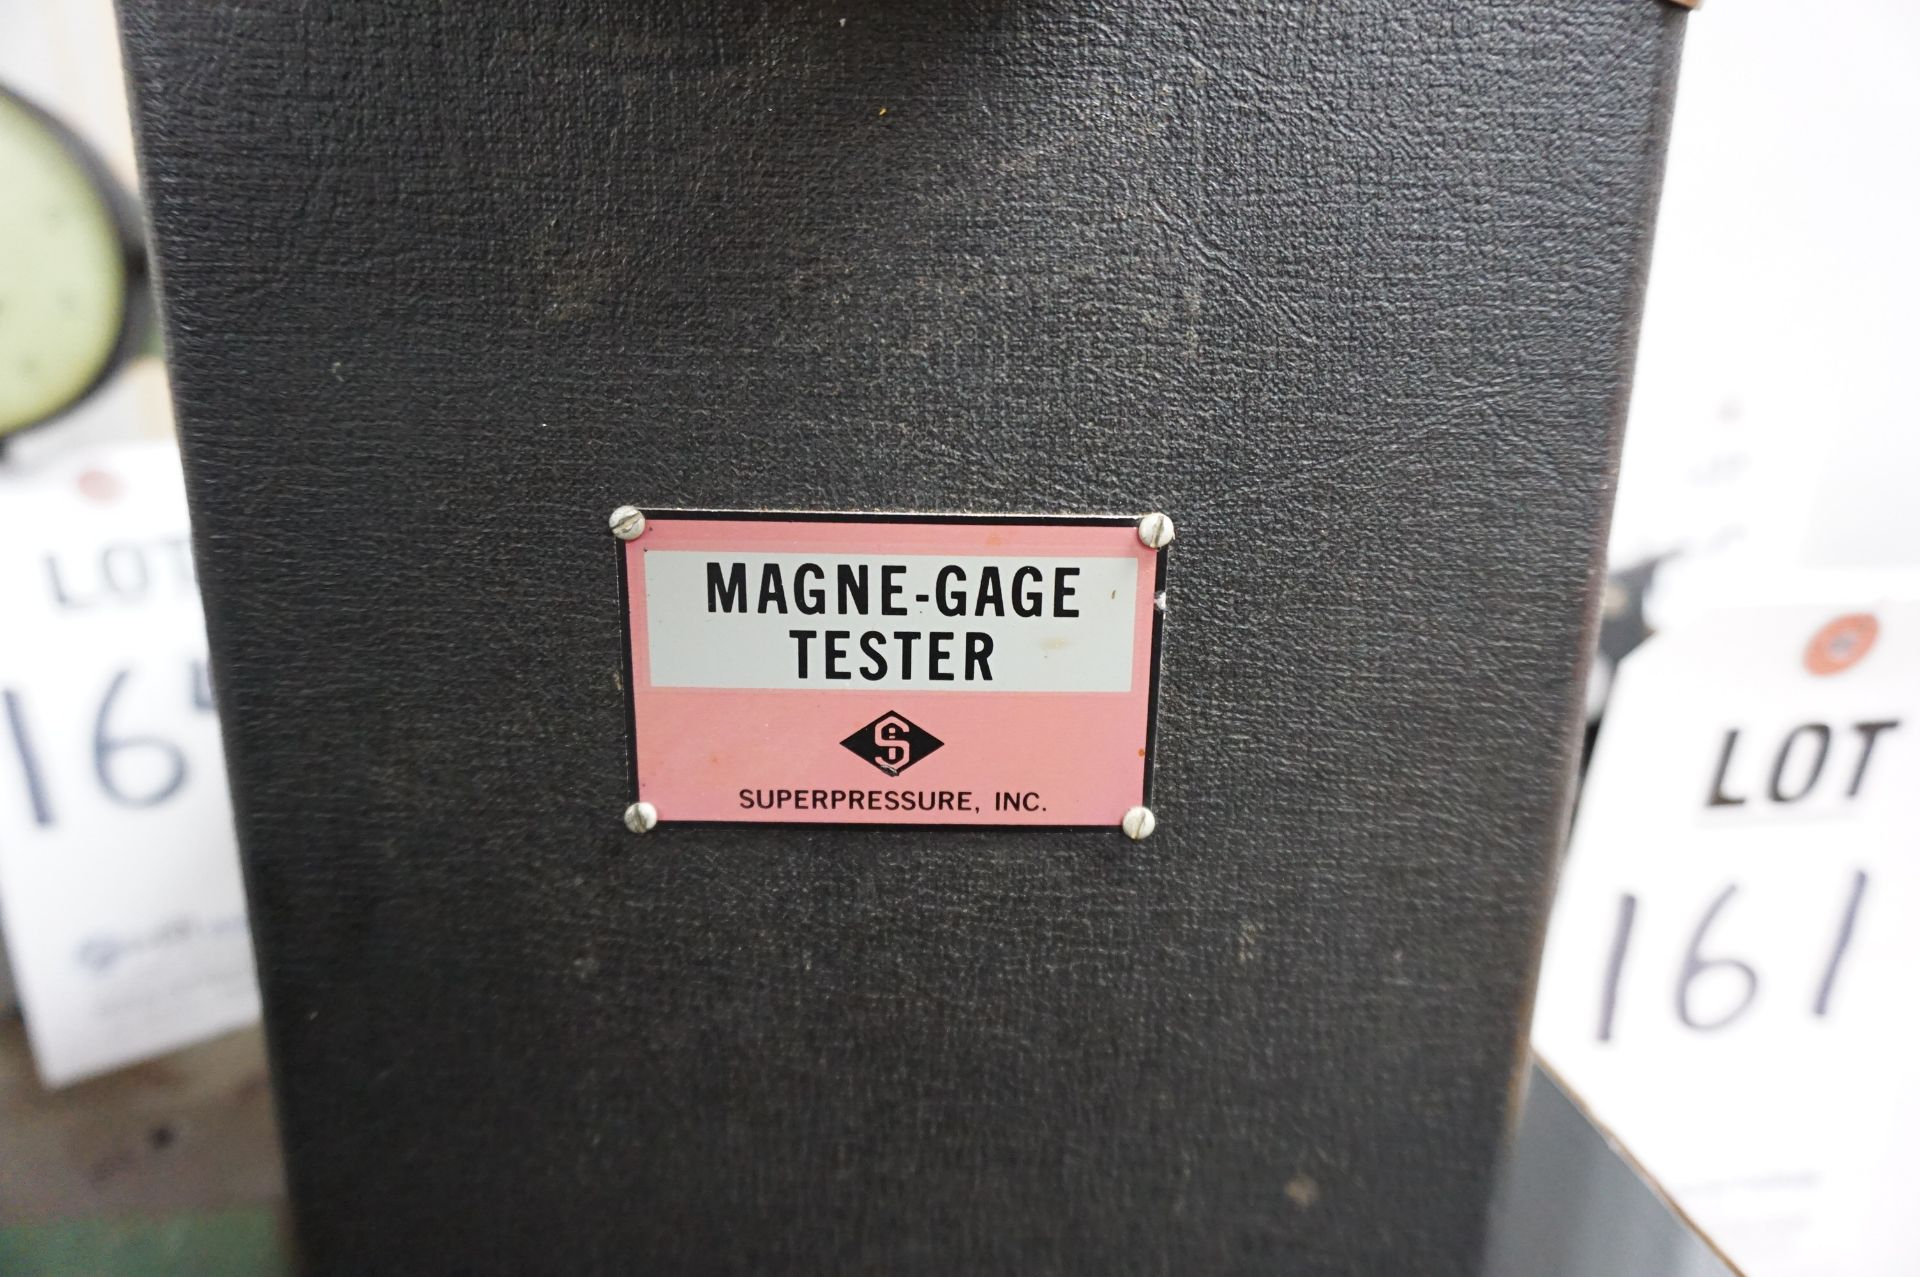 Lot 163 - SUPERPRESSURE INC. MAGNE-GAGE TESTER WITH CASE AND MANUALS